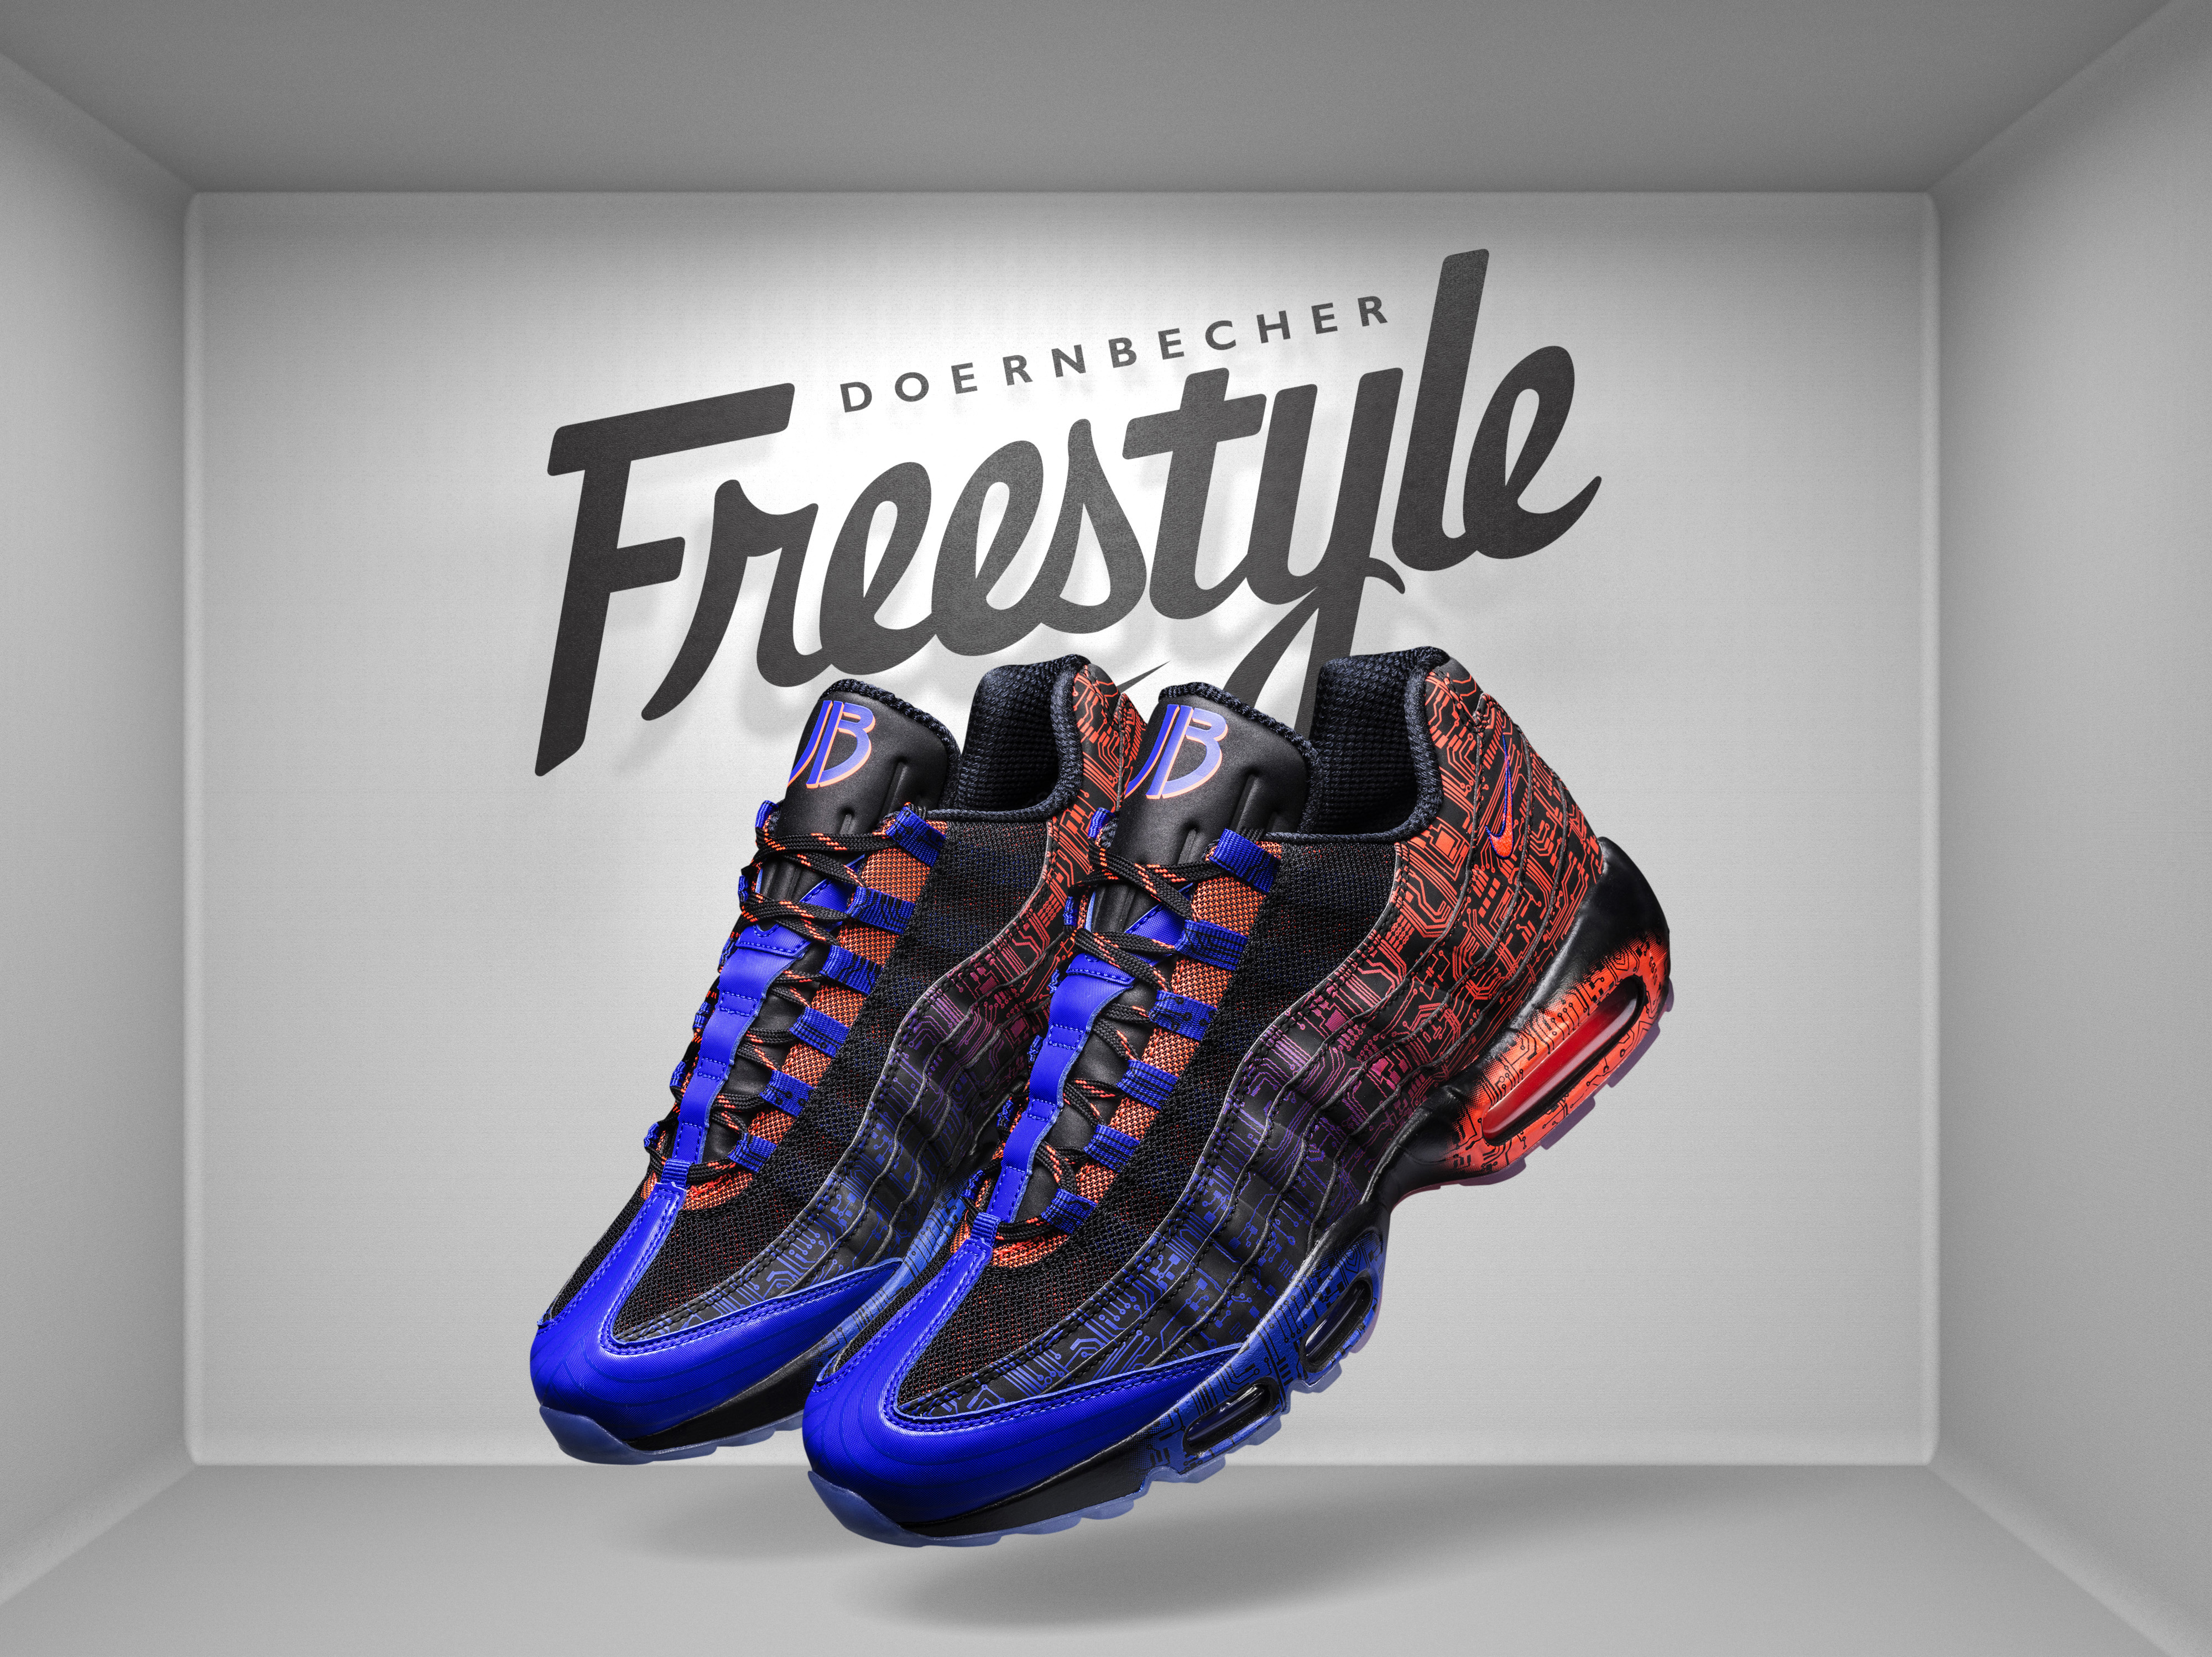 67063f95376048 Nike 2015 Doernbecher Freestyle Collection - Official Images - Air ...